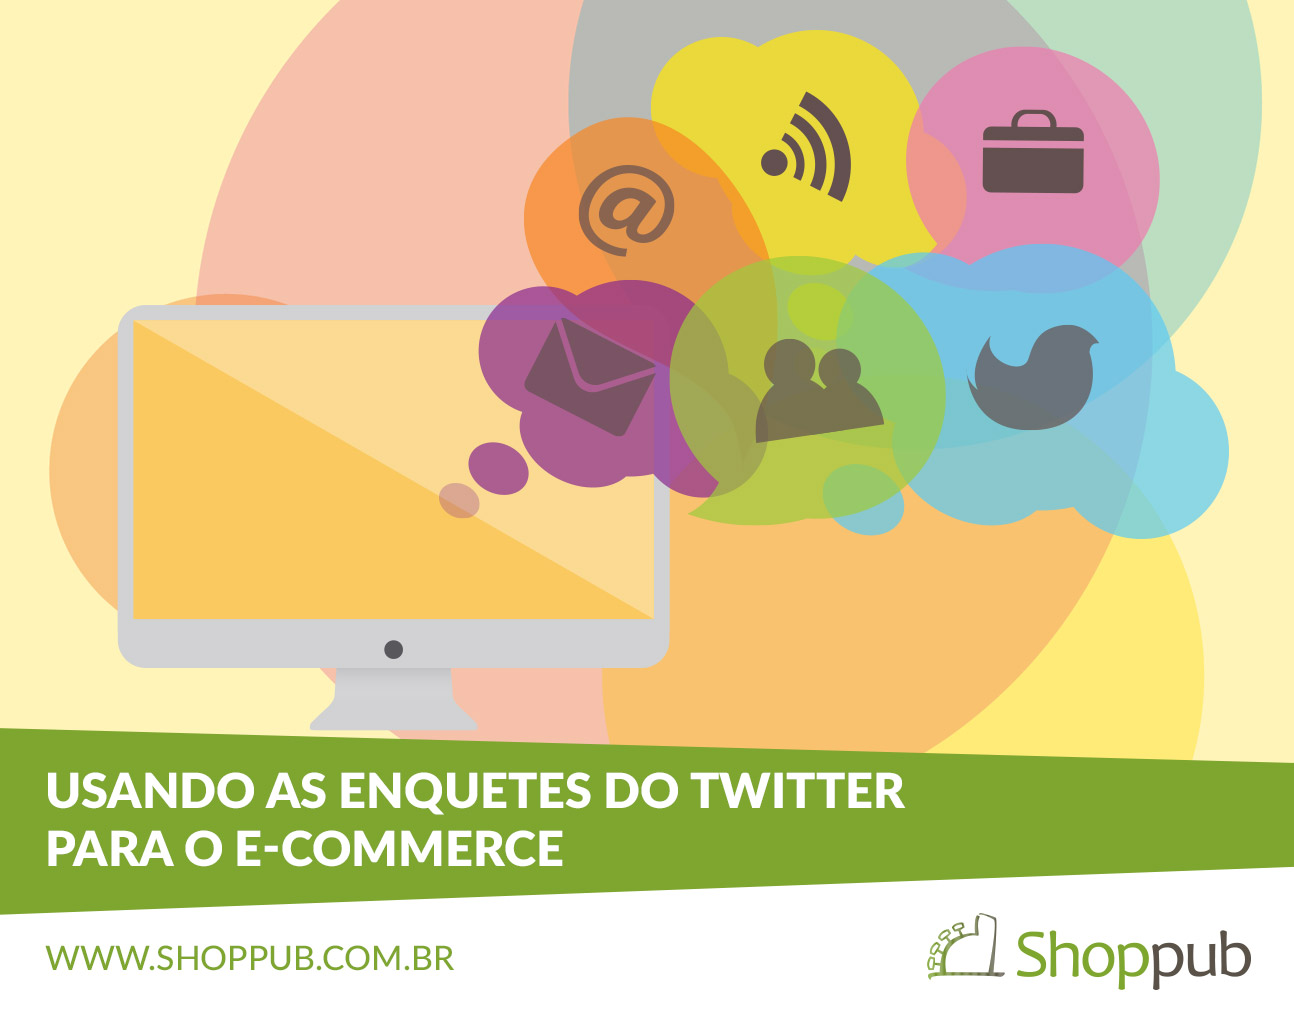 Usando as enquetes do Twitter para o E-commerce